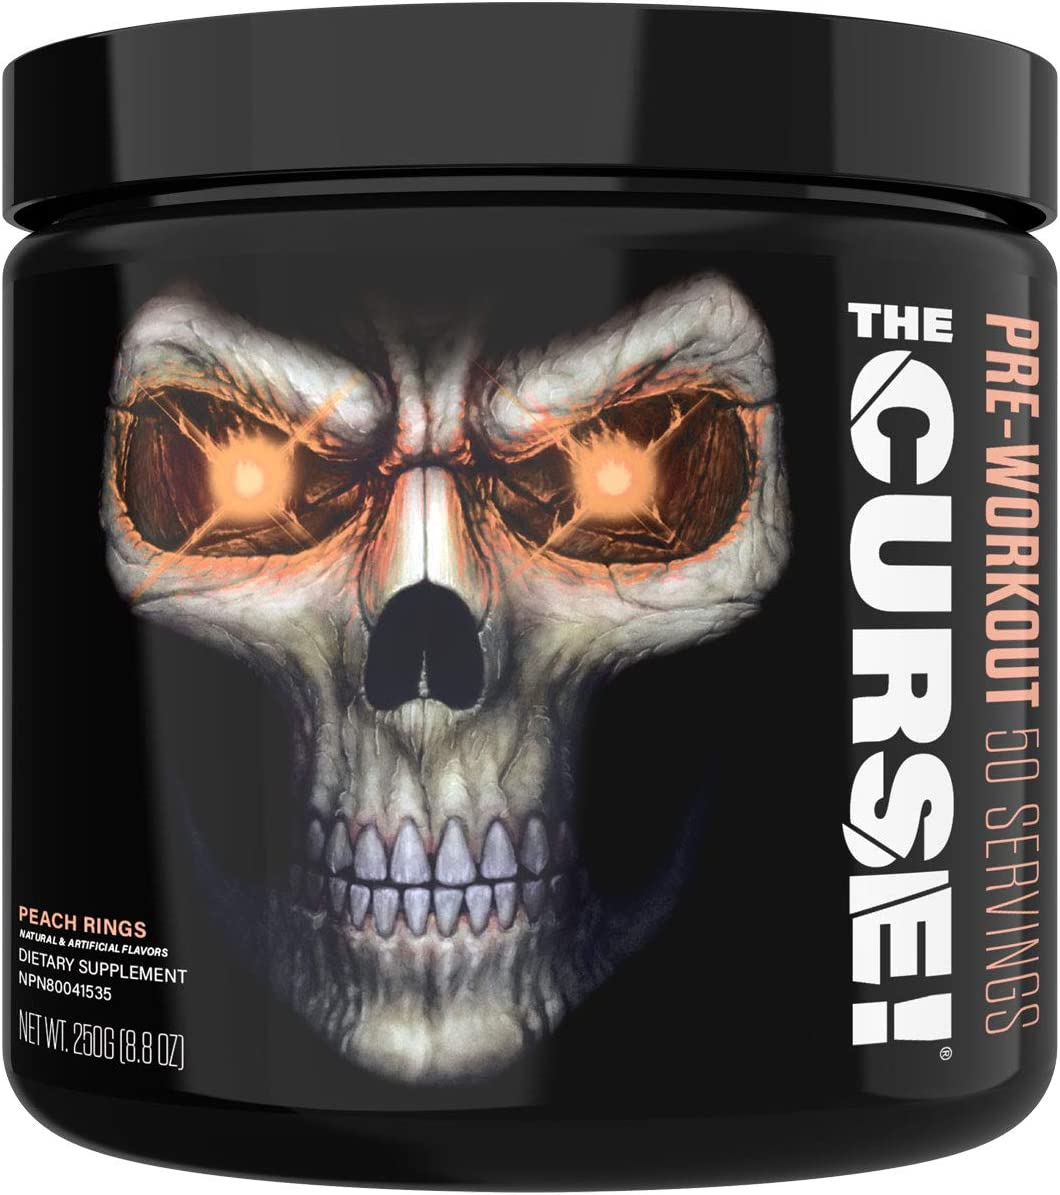 JNX Sports The Curse Pre Workout Supplement – Intense Energy Focus, Instant Strength Gains, Enhanced Blood Flow – Nitric Oxide Booster with Creatine Caffeine – Men Women Peach Rings 50 SRV